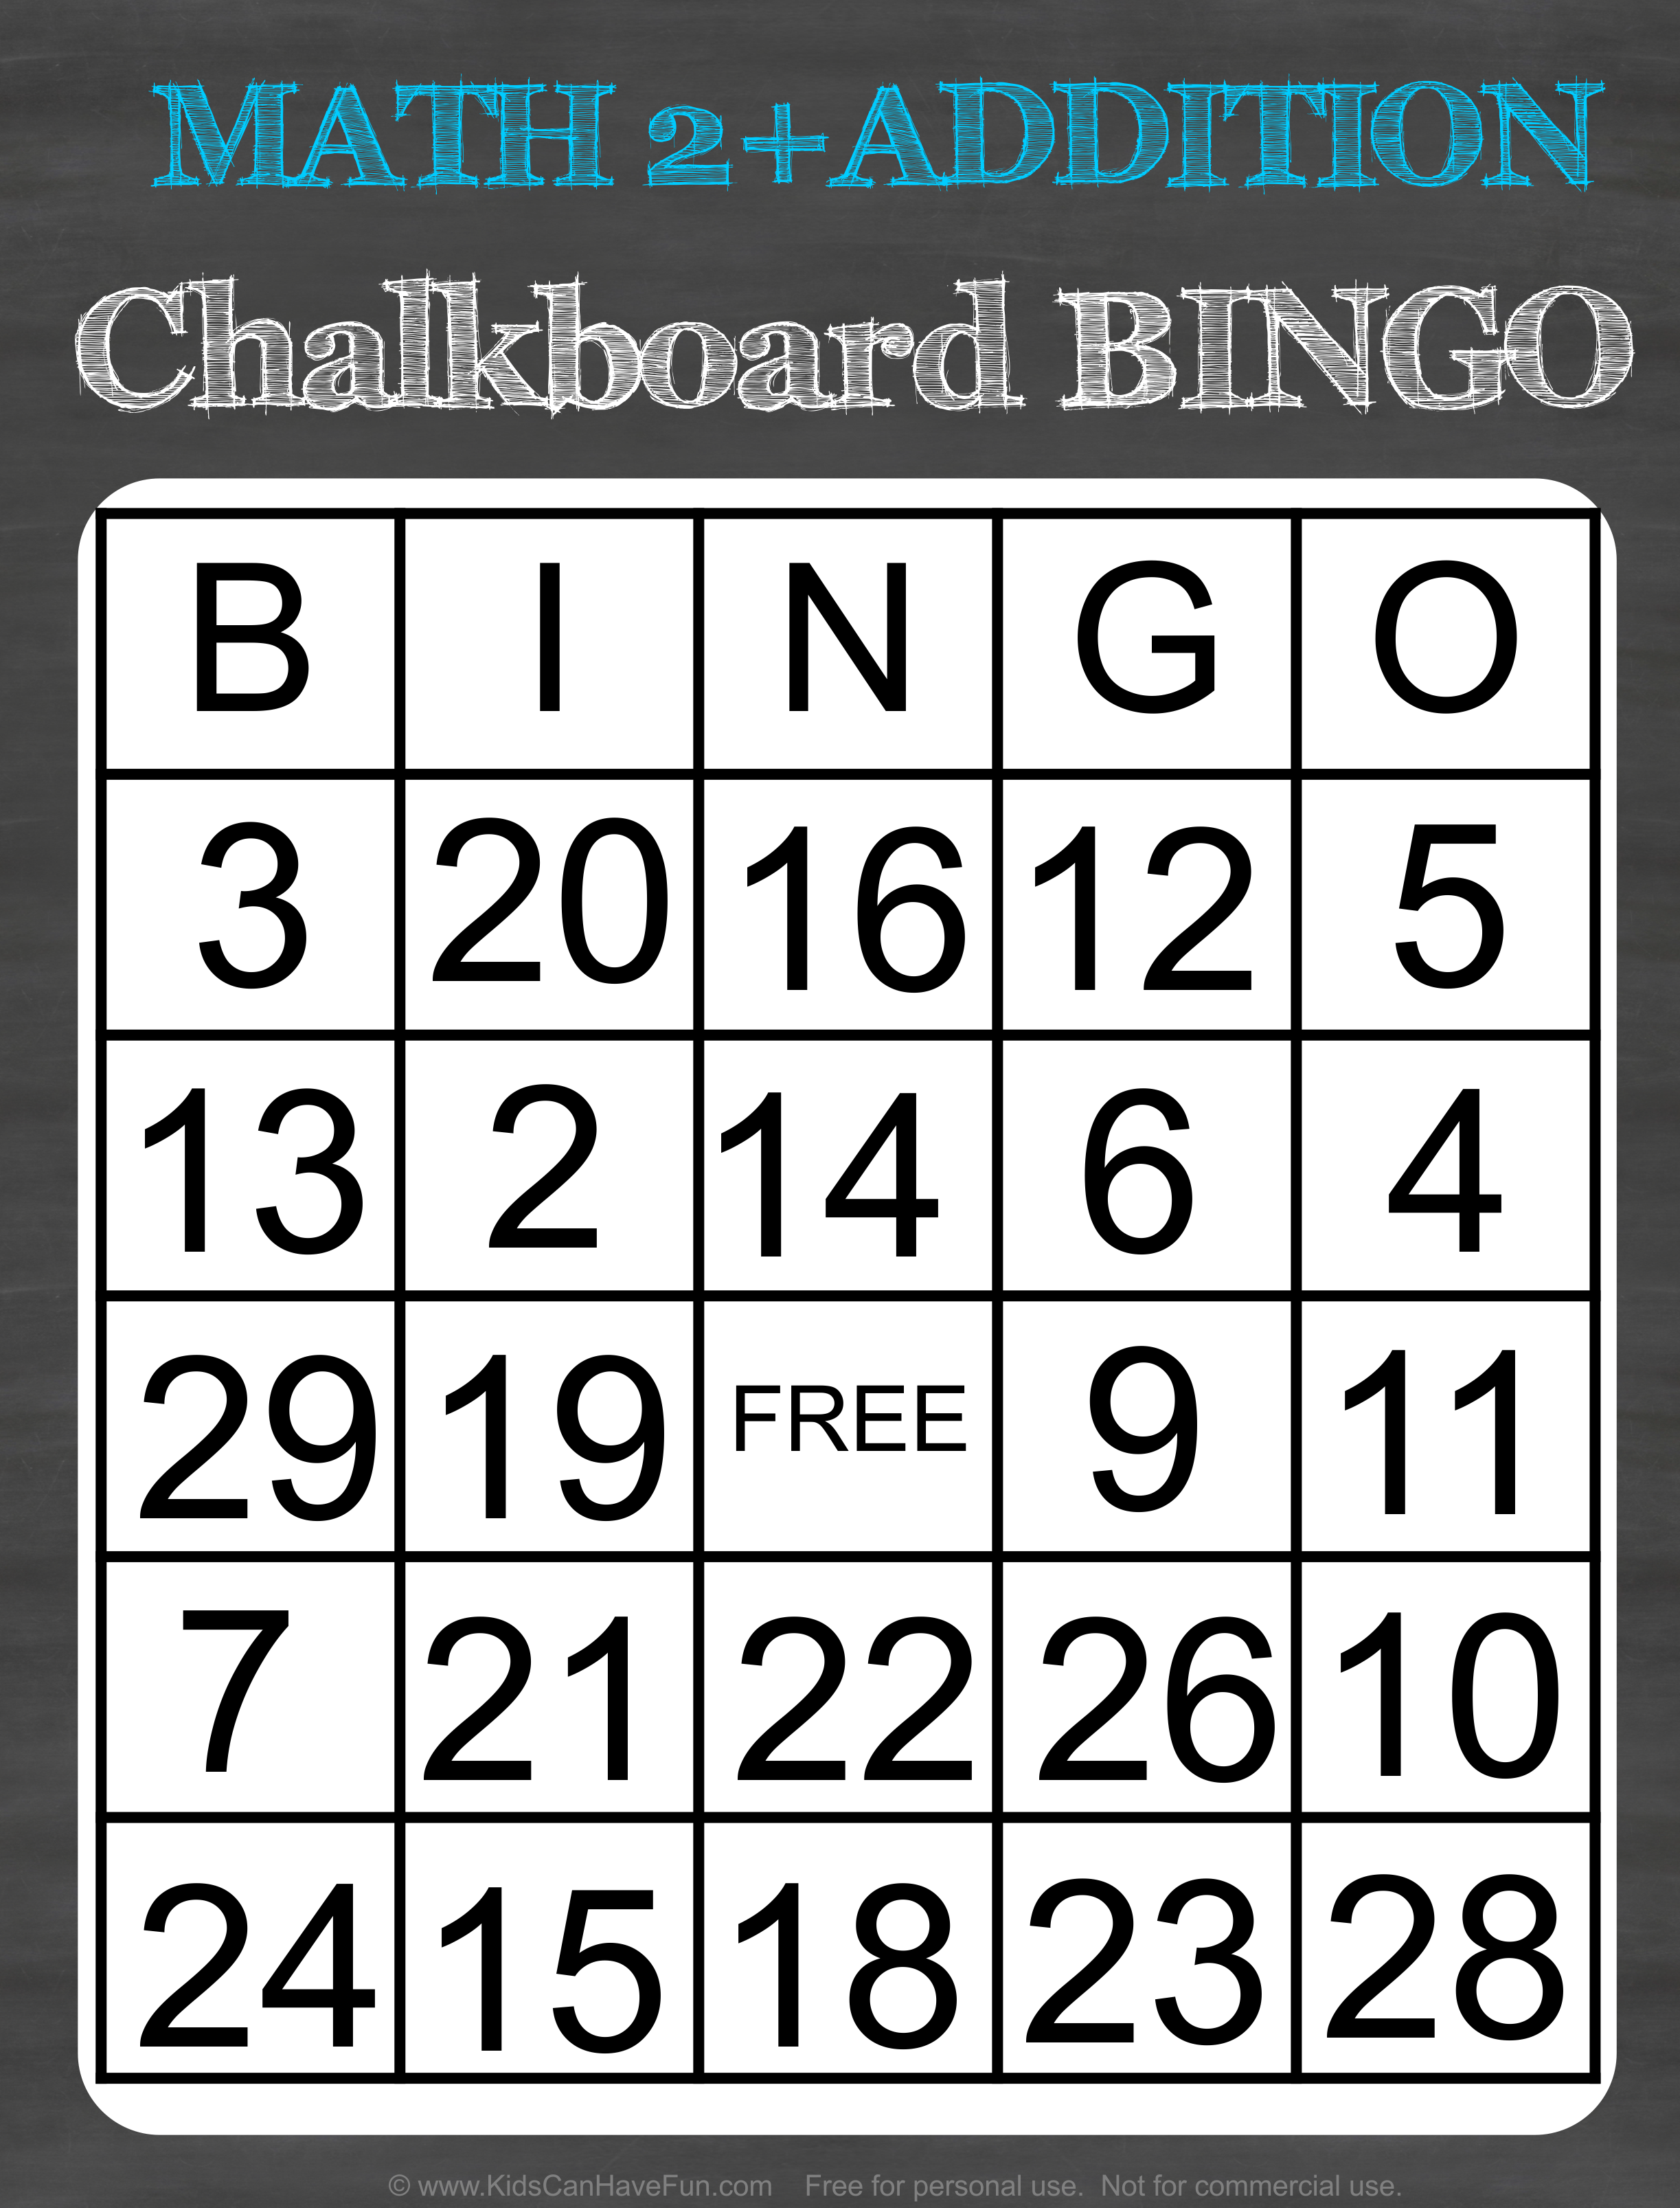 Math 2 Addition Chalkboard Bingo Game In